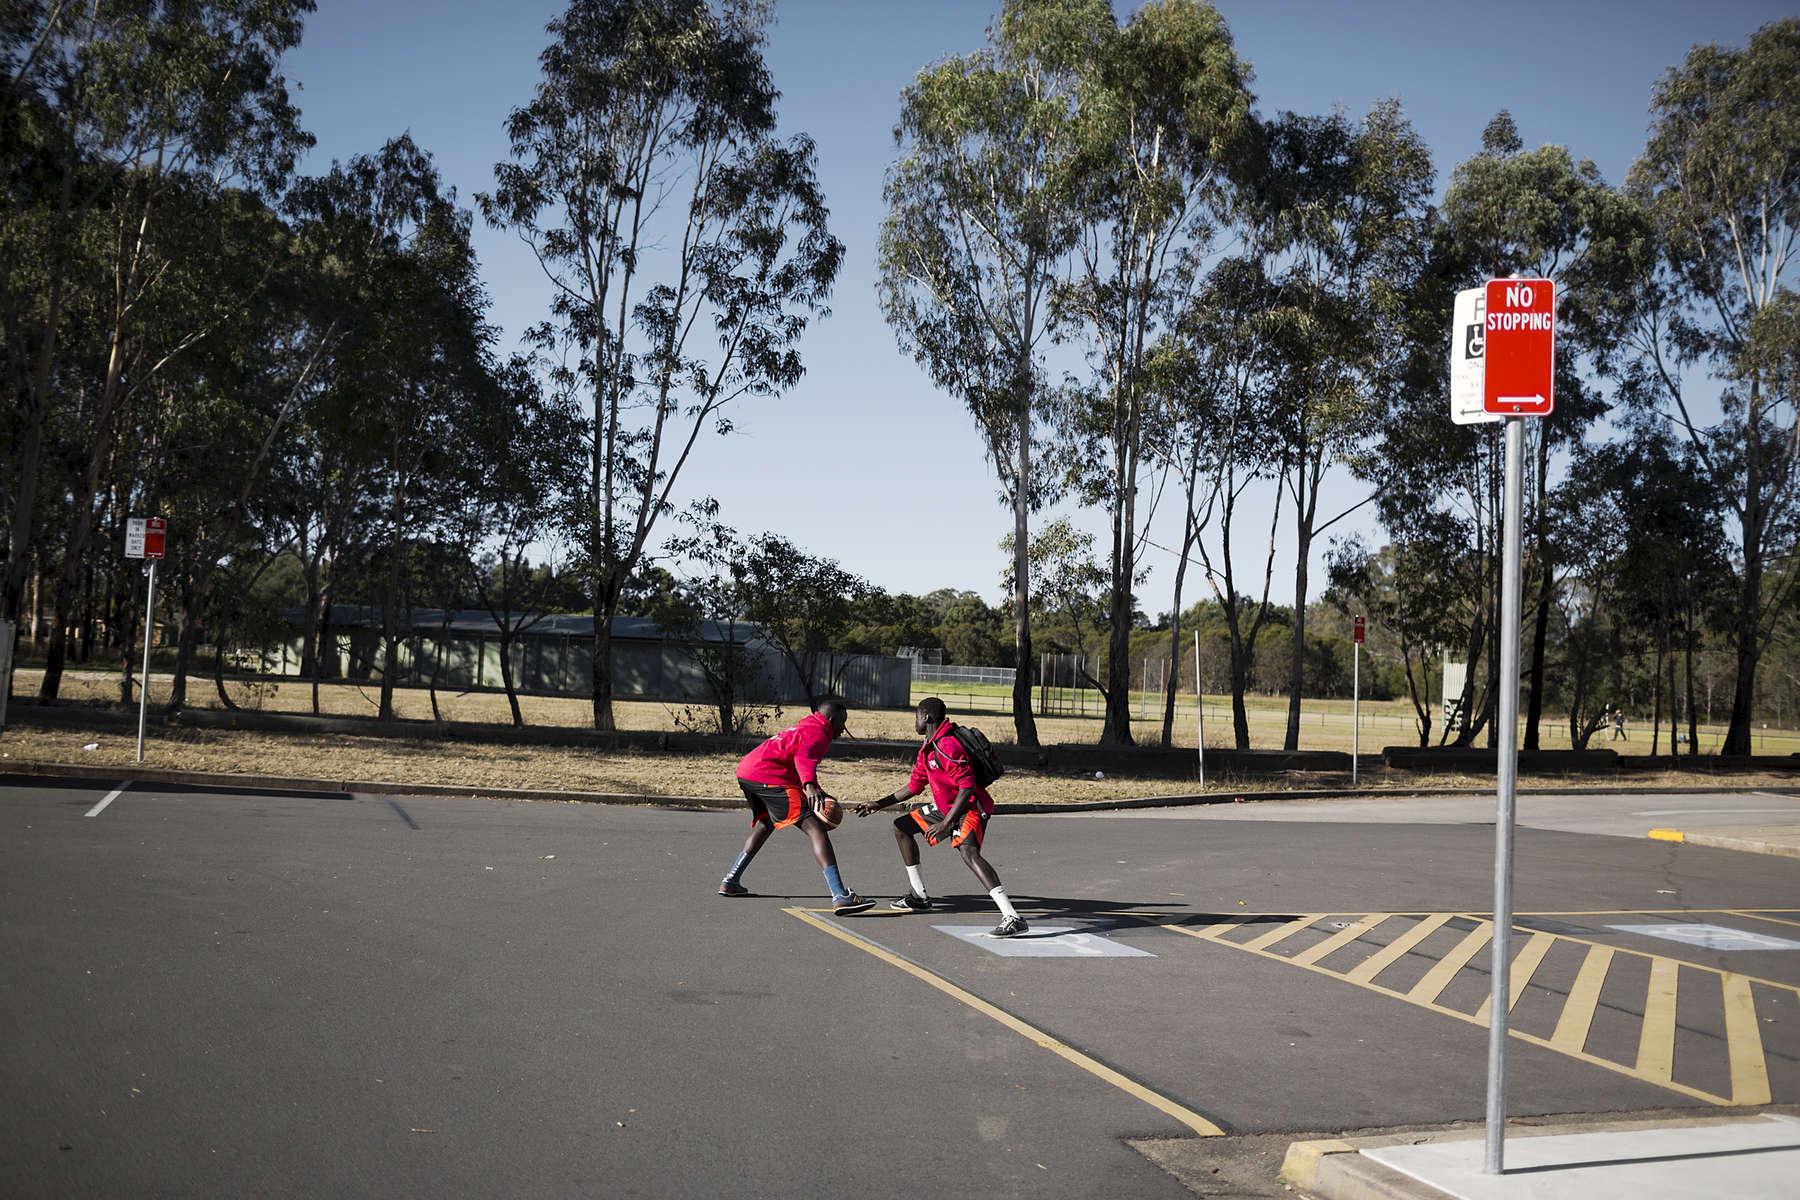 Young South Sudanese basketball players play one-on-one in the car park at the Penrith Basketball Stadium in Western Sydney. There are a number of young Australian South Sudanese basketball players currently at high schools and colleges in the United States including Thon Maker who is hoped will one day play in the NBA. Thon is attending high school at Orangeville District Secondary School and playing basketball for Canada's Athlete Institute.